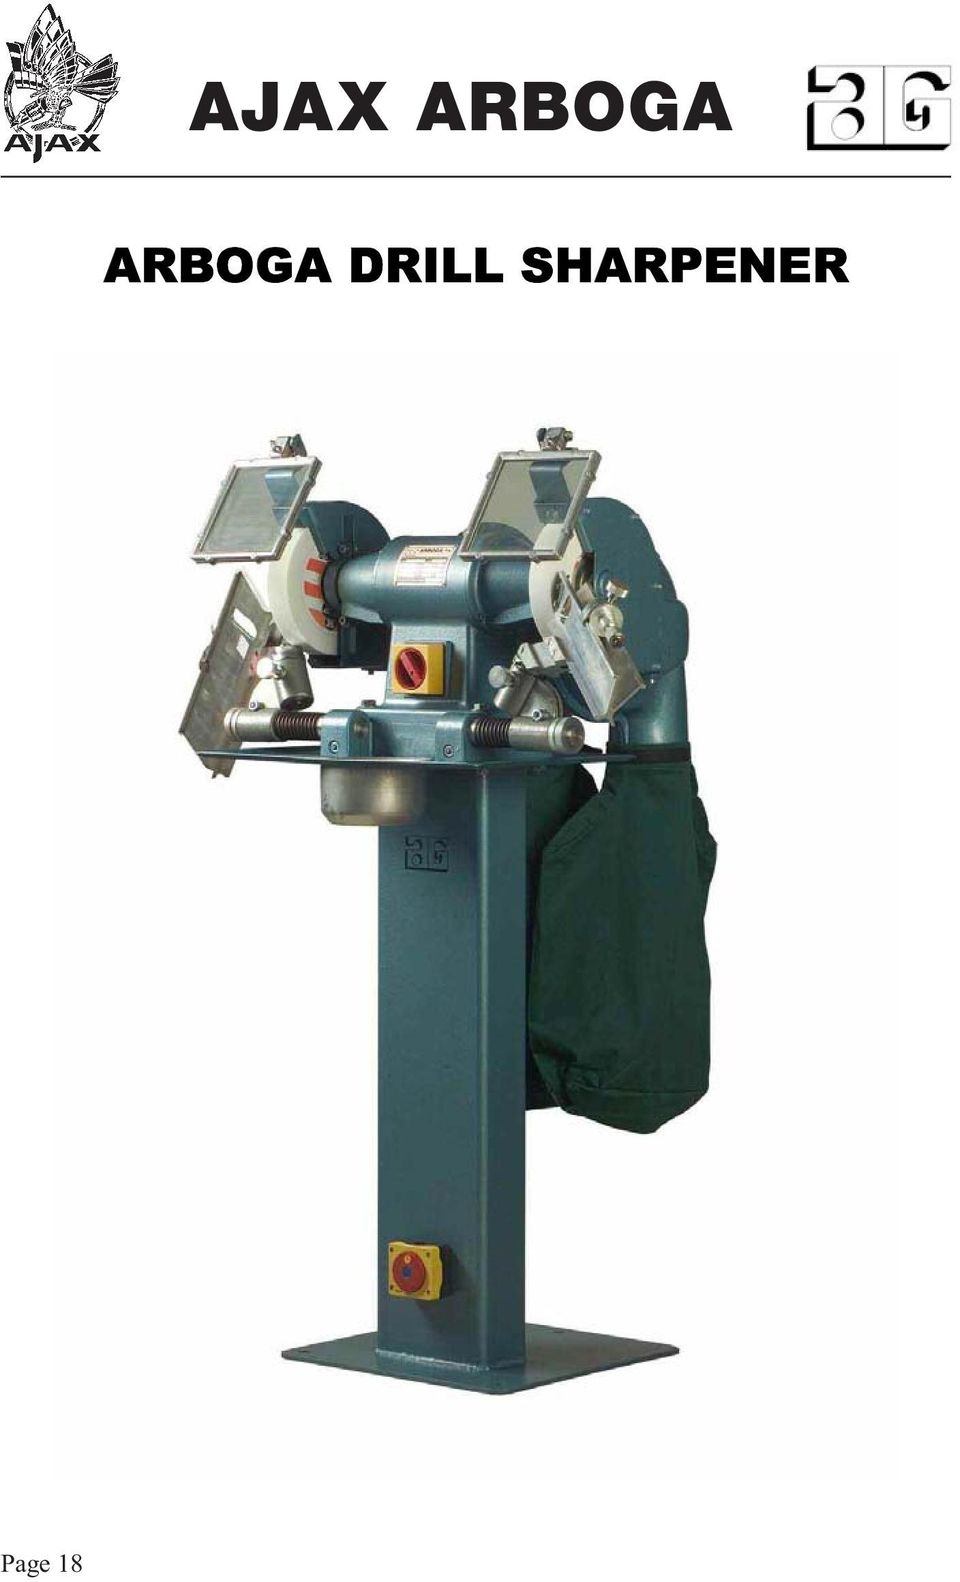 Ajax Arboga Pdf. 19 Drill Grinding Attachment The Simple Solution Bep 308 With Axiom Eyeshield Arboga Bepab Attachments A B. Wiring. Br Tool Bench Grinder Wiring Diagram At Scoala.co